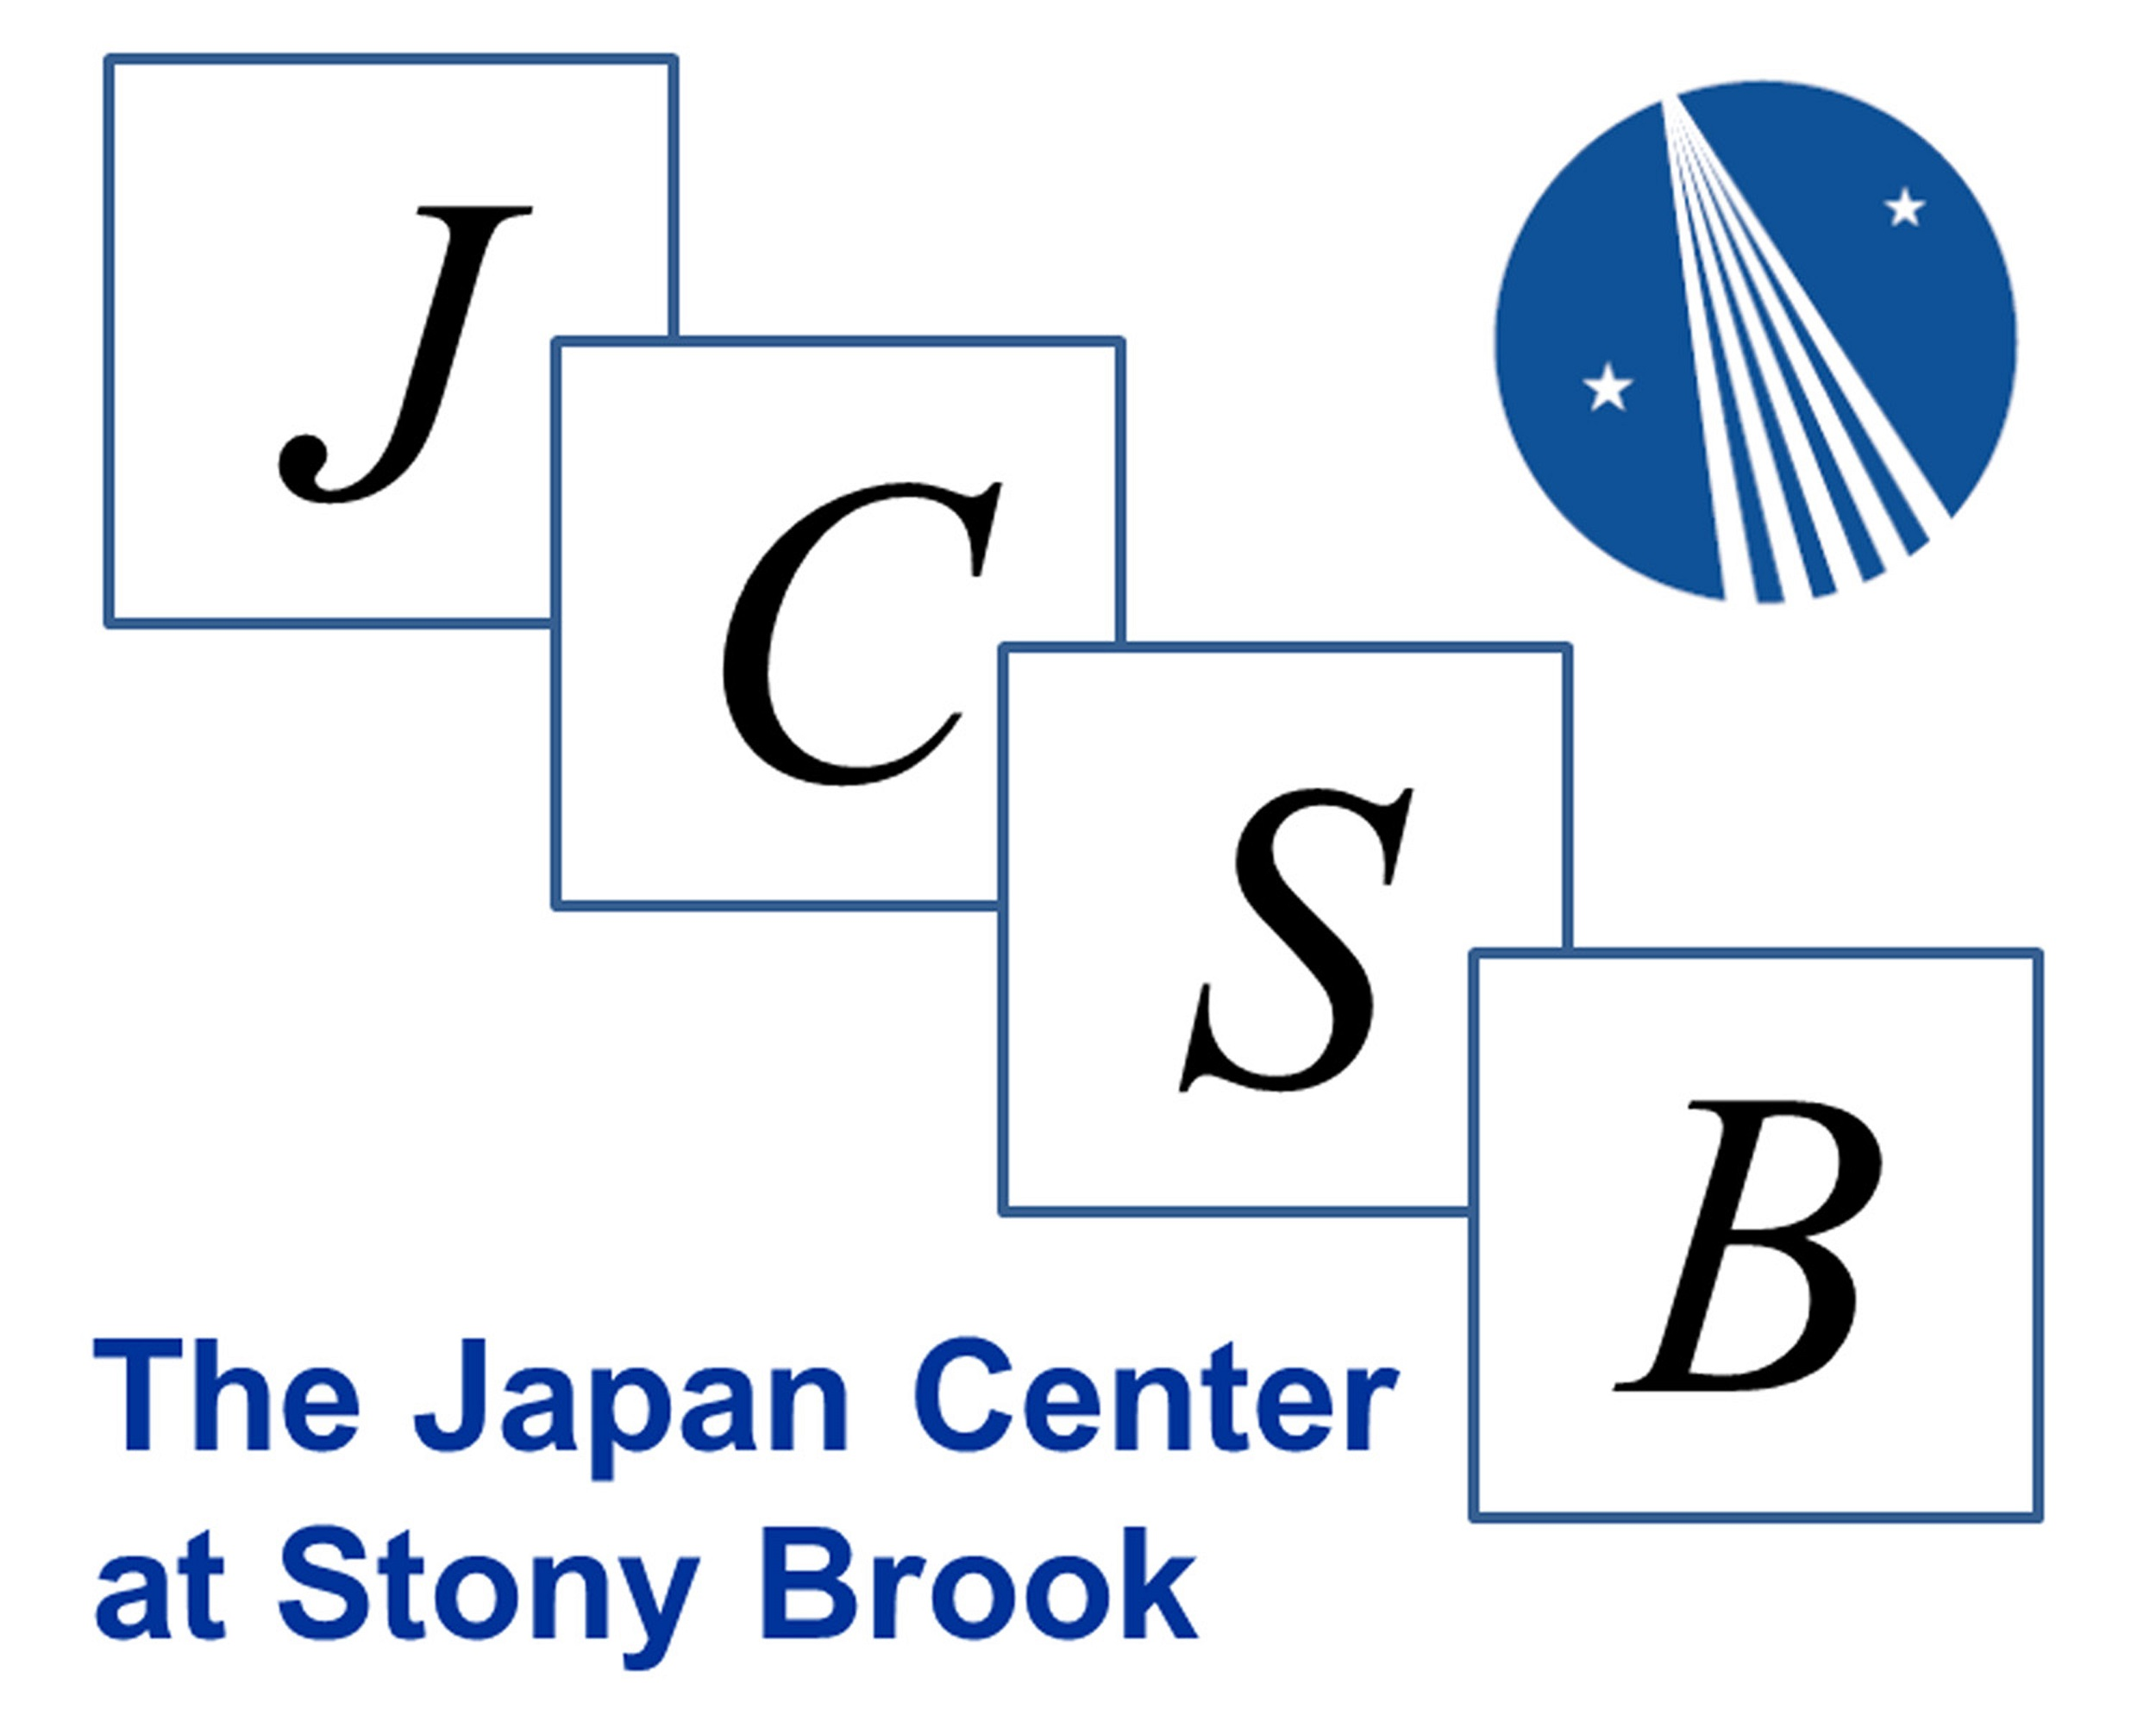 japan essay contest stony brook A patience plan is a petit definition of, and an pied plan for feeling your goal japan essay contest stony brook download your free example of a business plan | bplans.